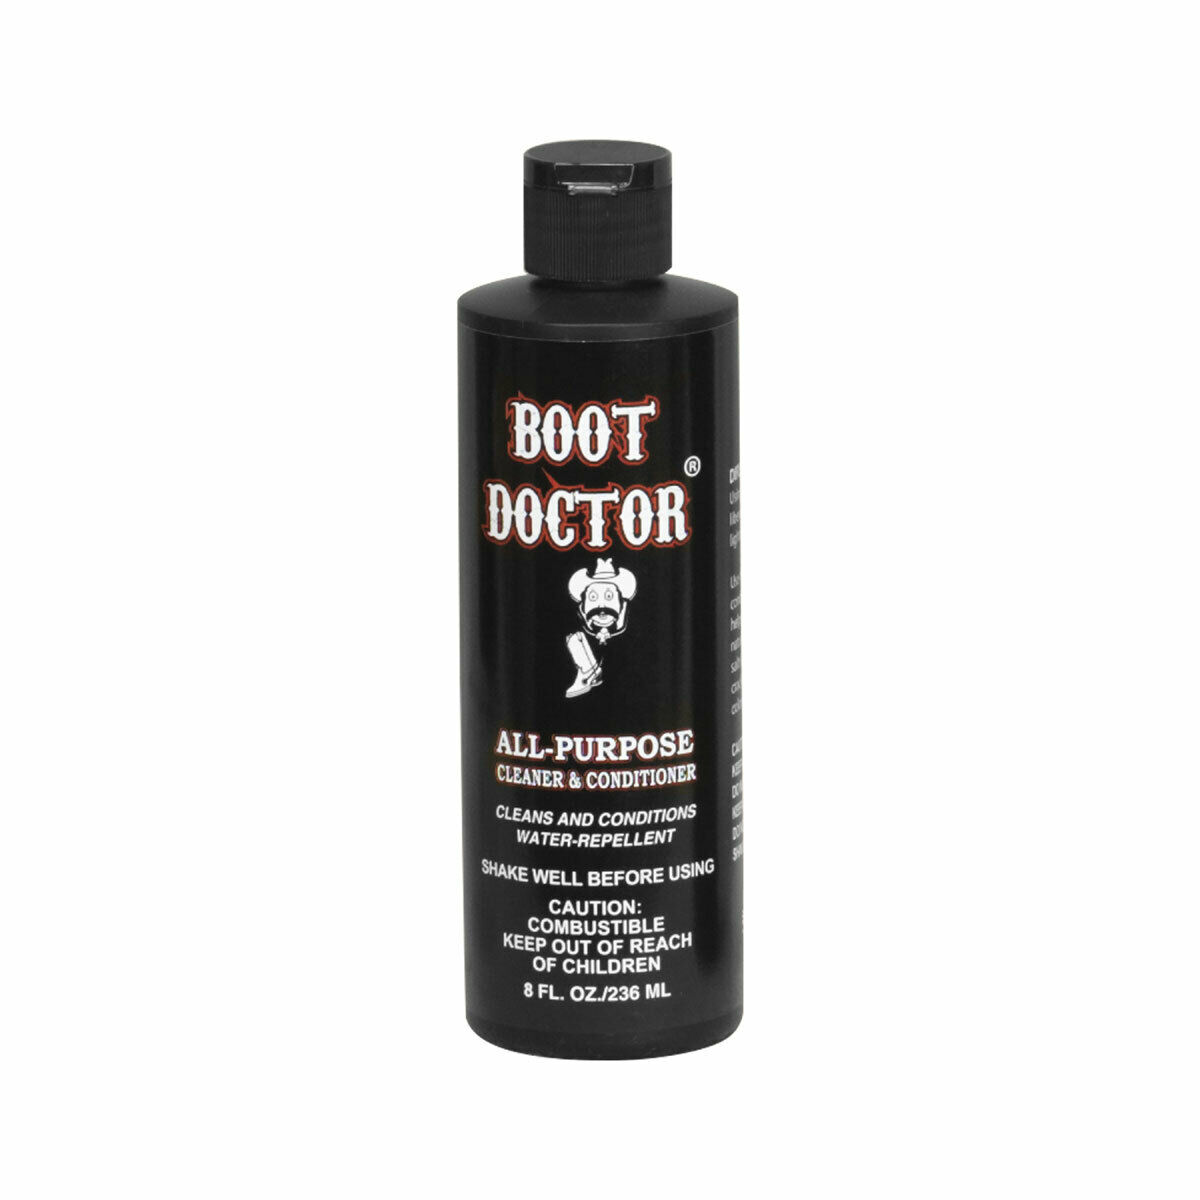 Boot Doctor -All Purpose Cleaner & Conditioner - Leather Care Water Repellent